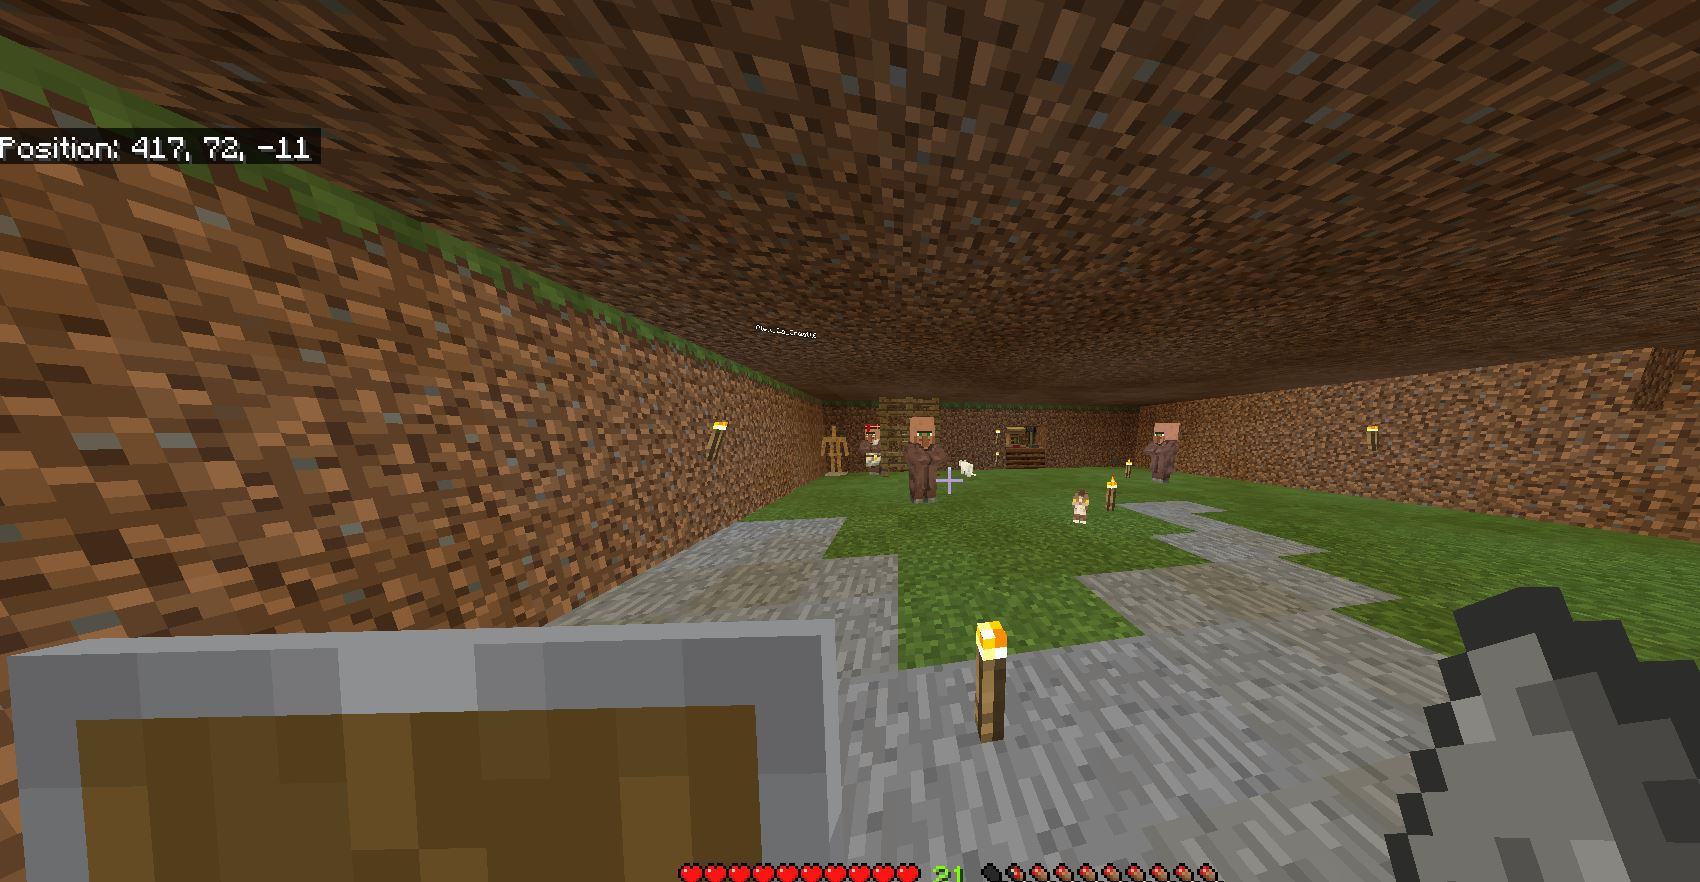 MCPE-11] villagers respawn and then they disappear - Jira